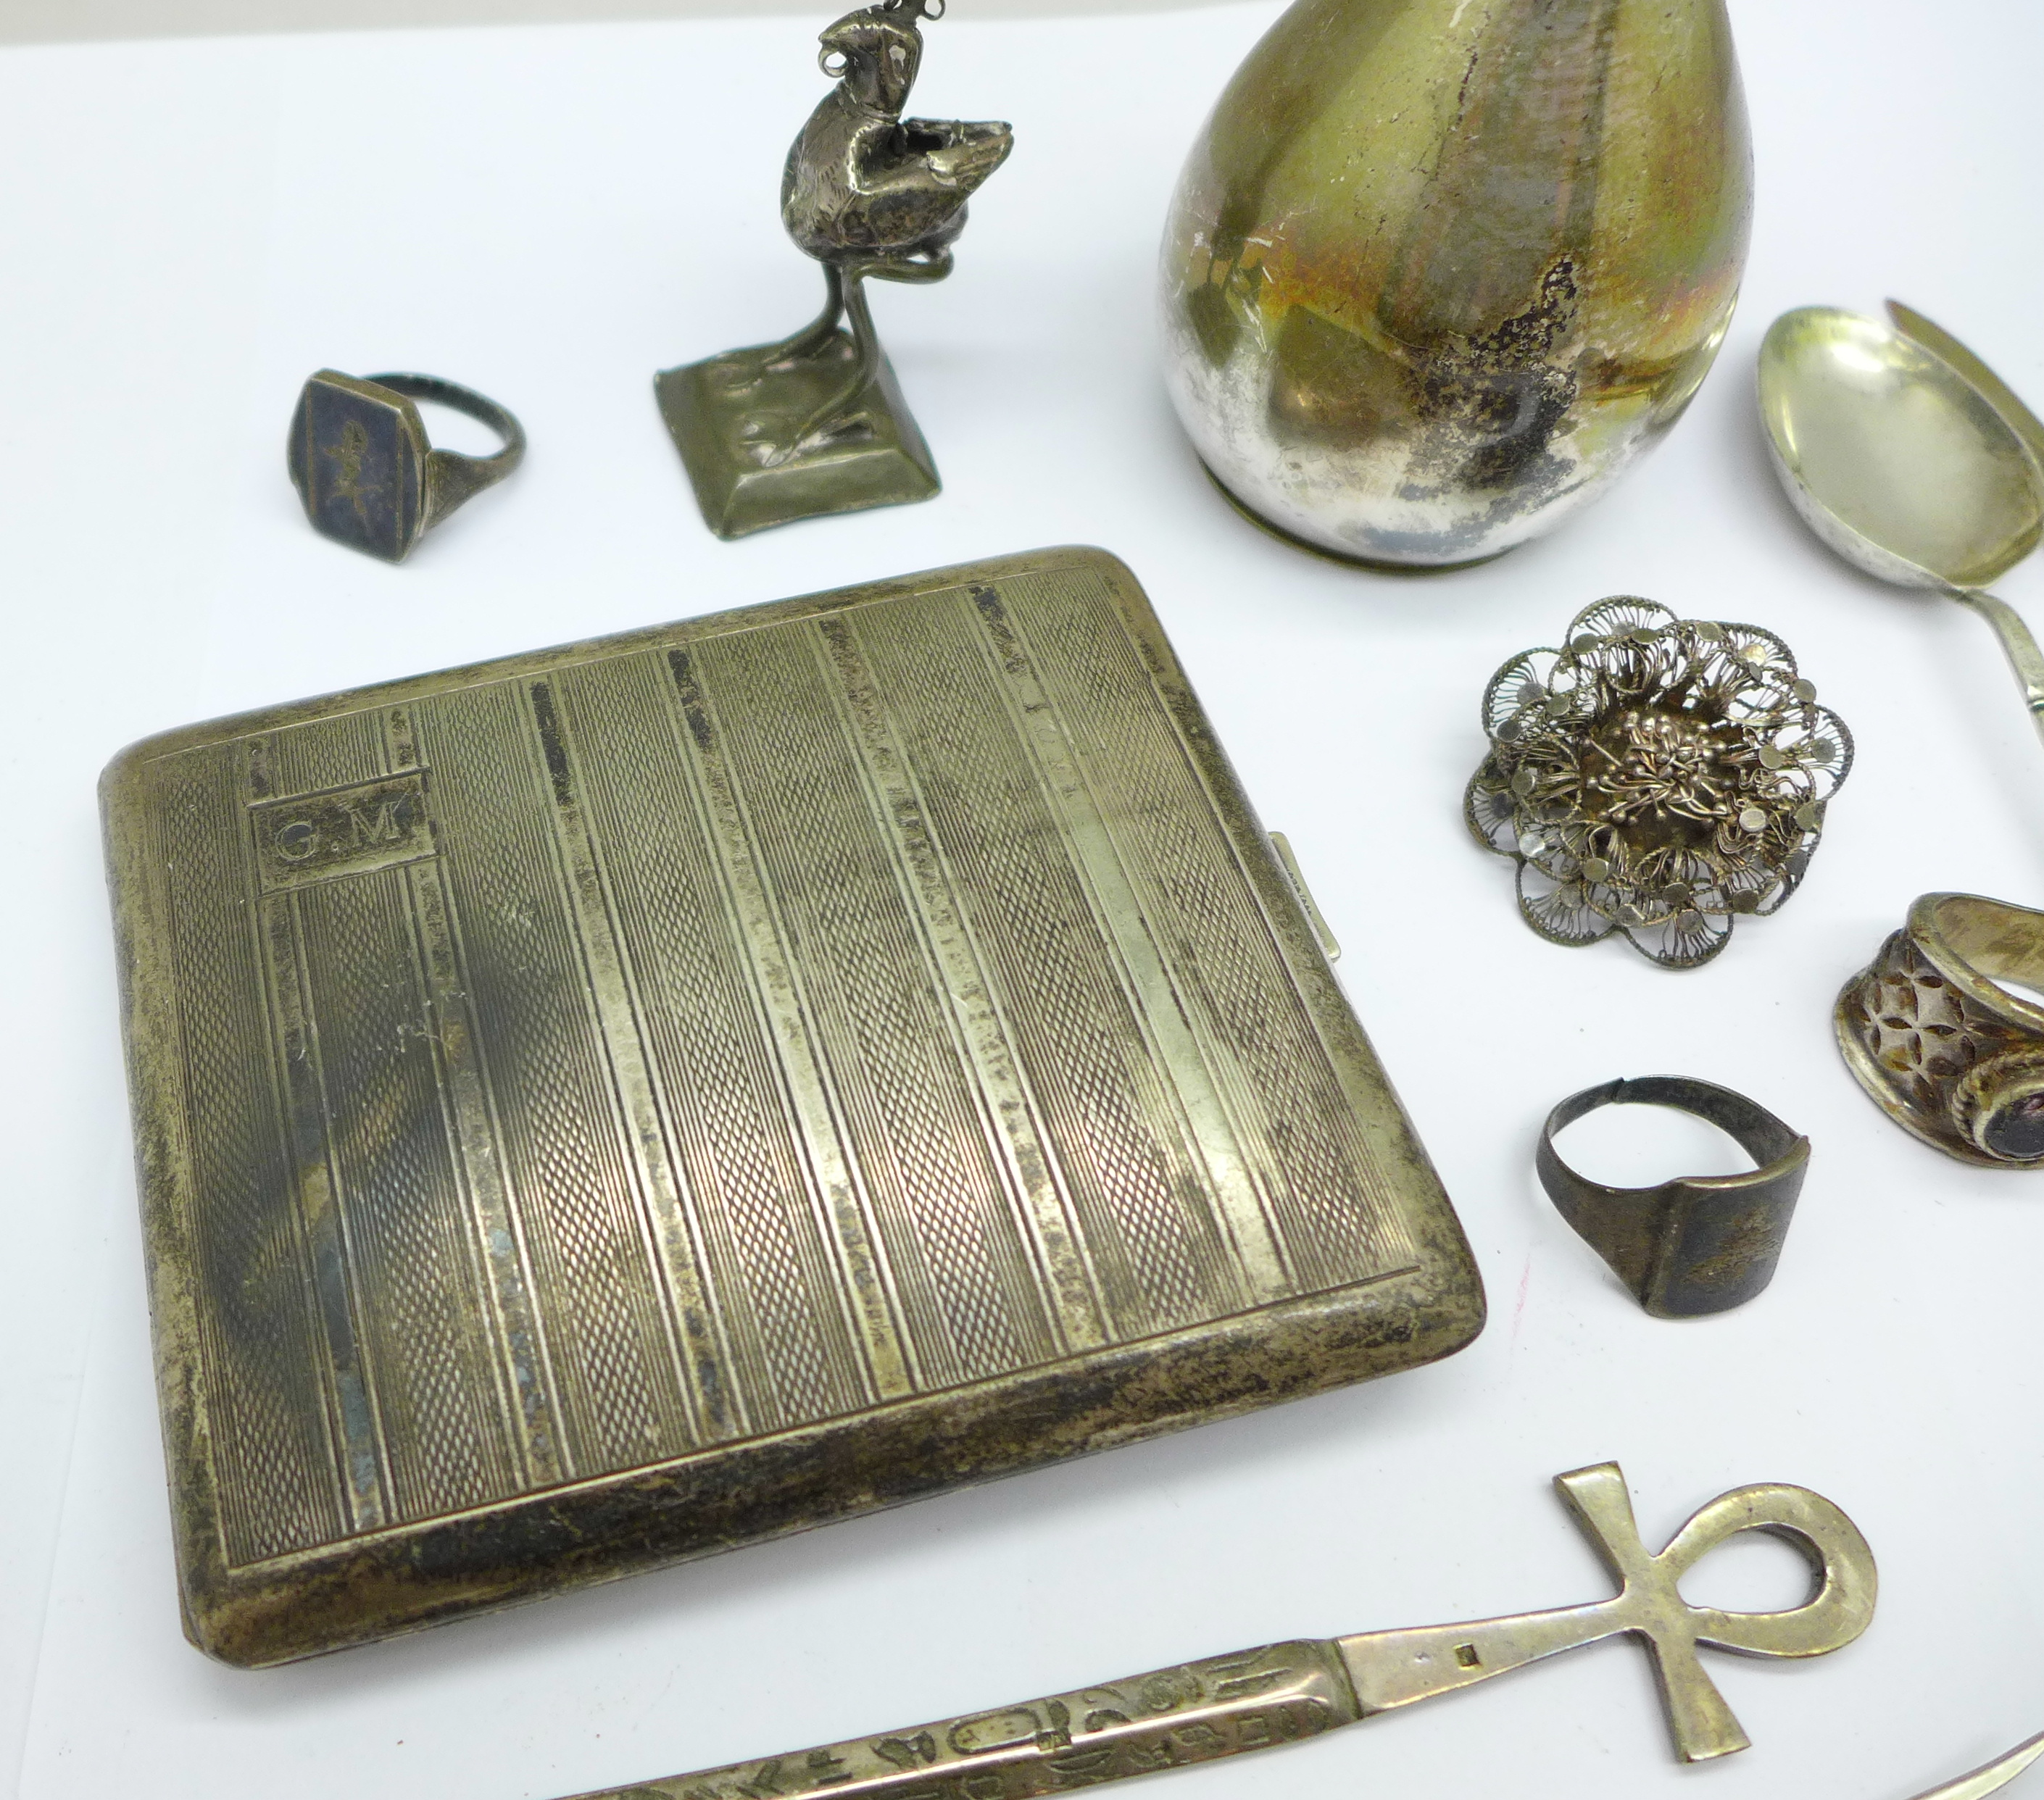 A collection of continental silver including a cigarette case, jug, rings, spoon, etc., 280g - Image 5 of 7